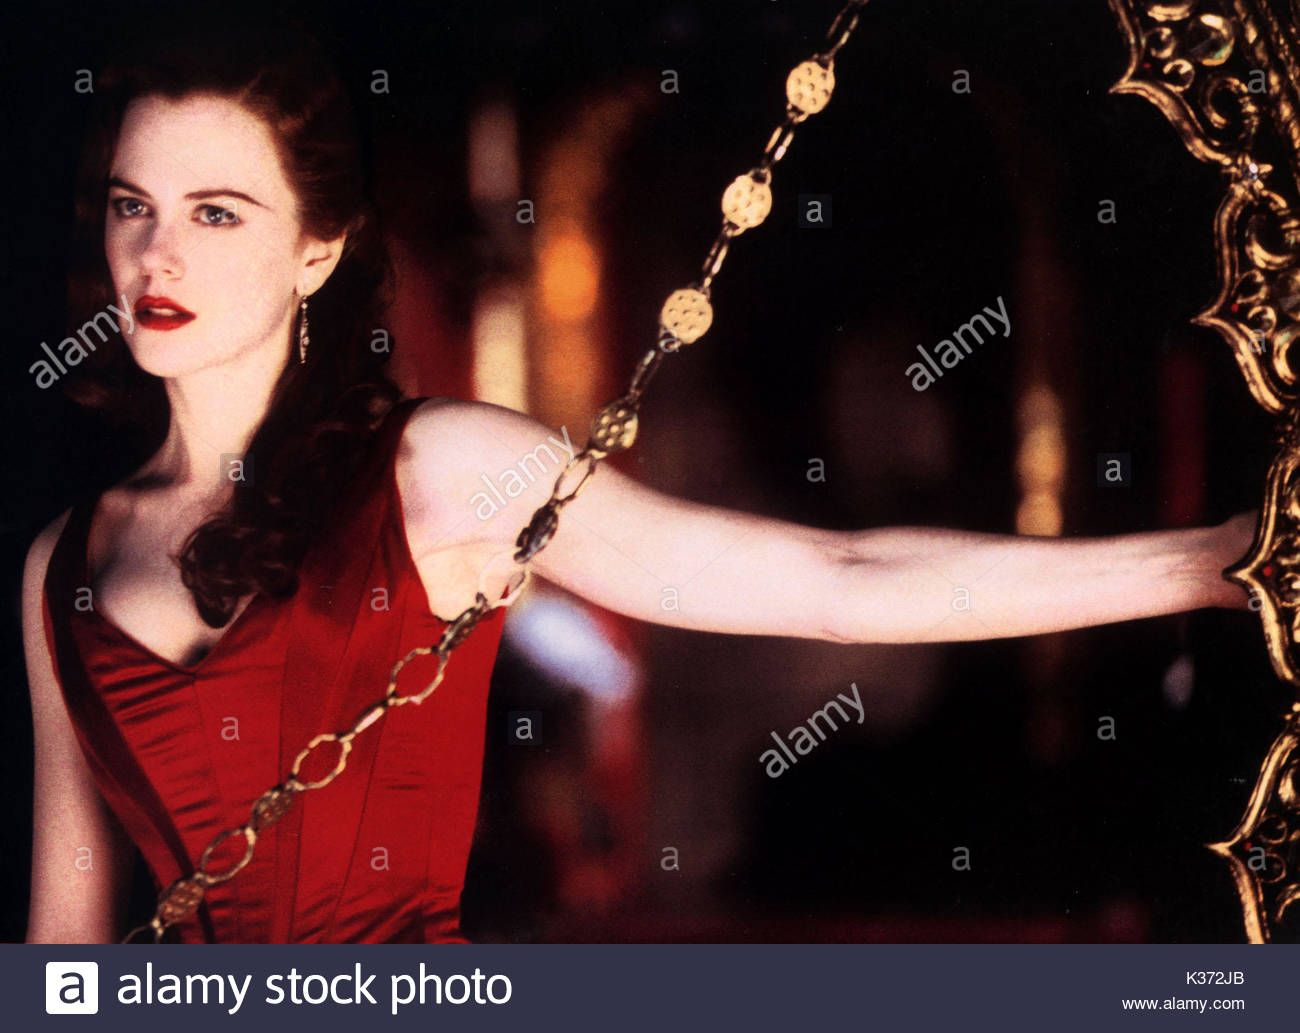 Download this stock image: MOULIN ROUGE! NICOLE KIDMAN ...